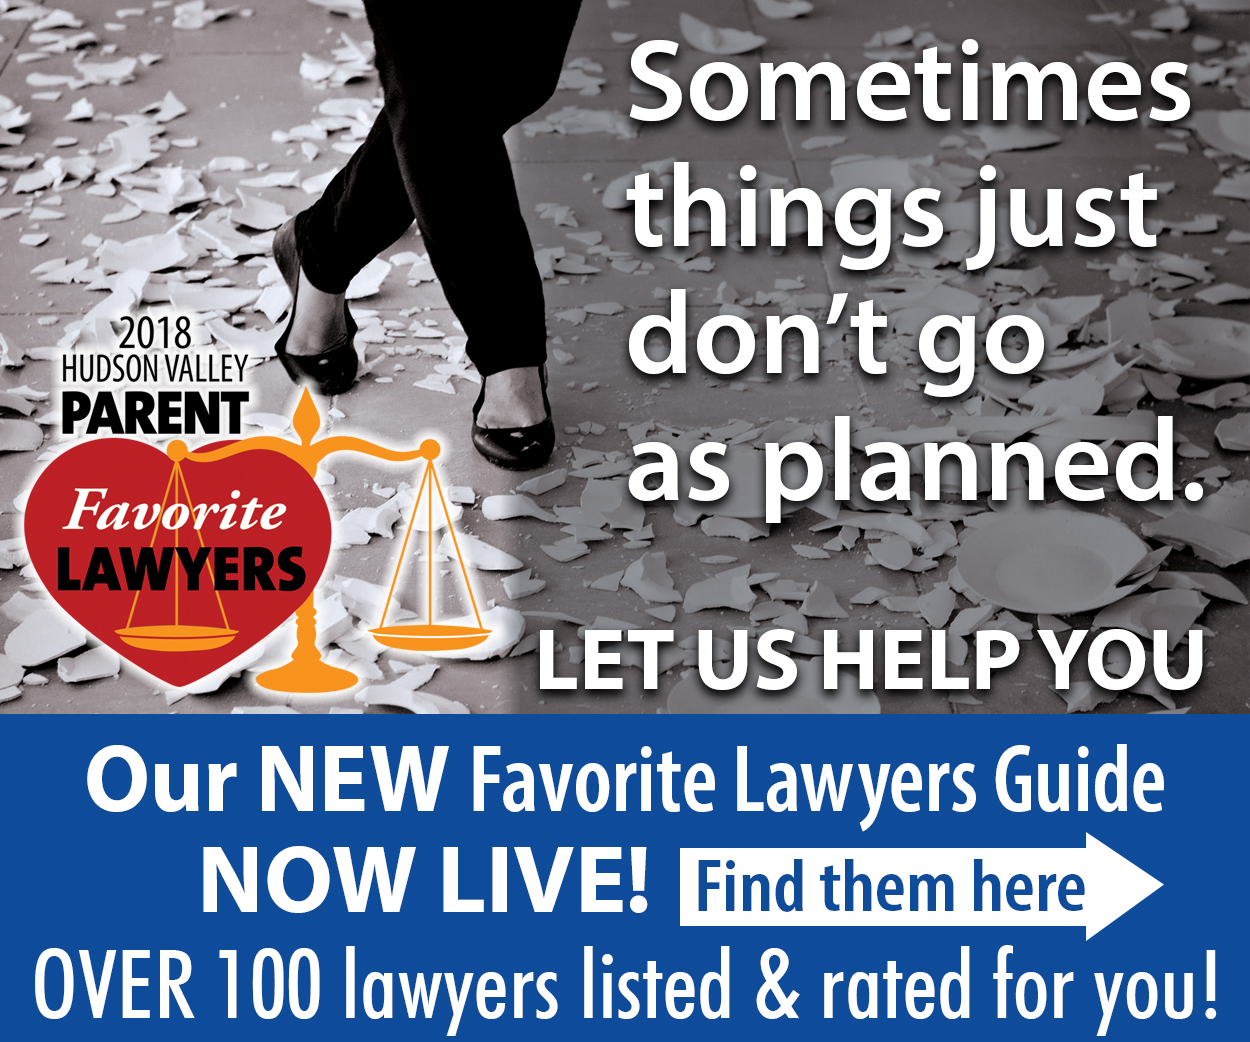 Favorite Lawyers guide live